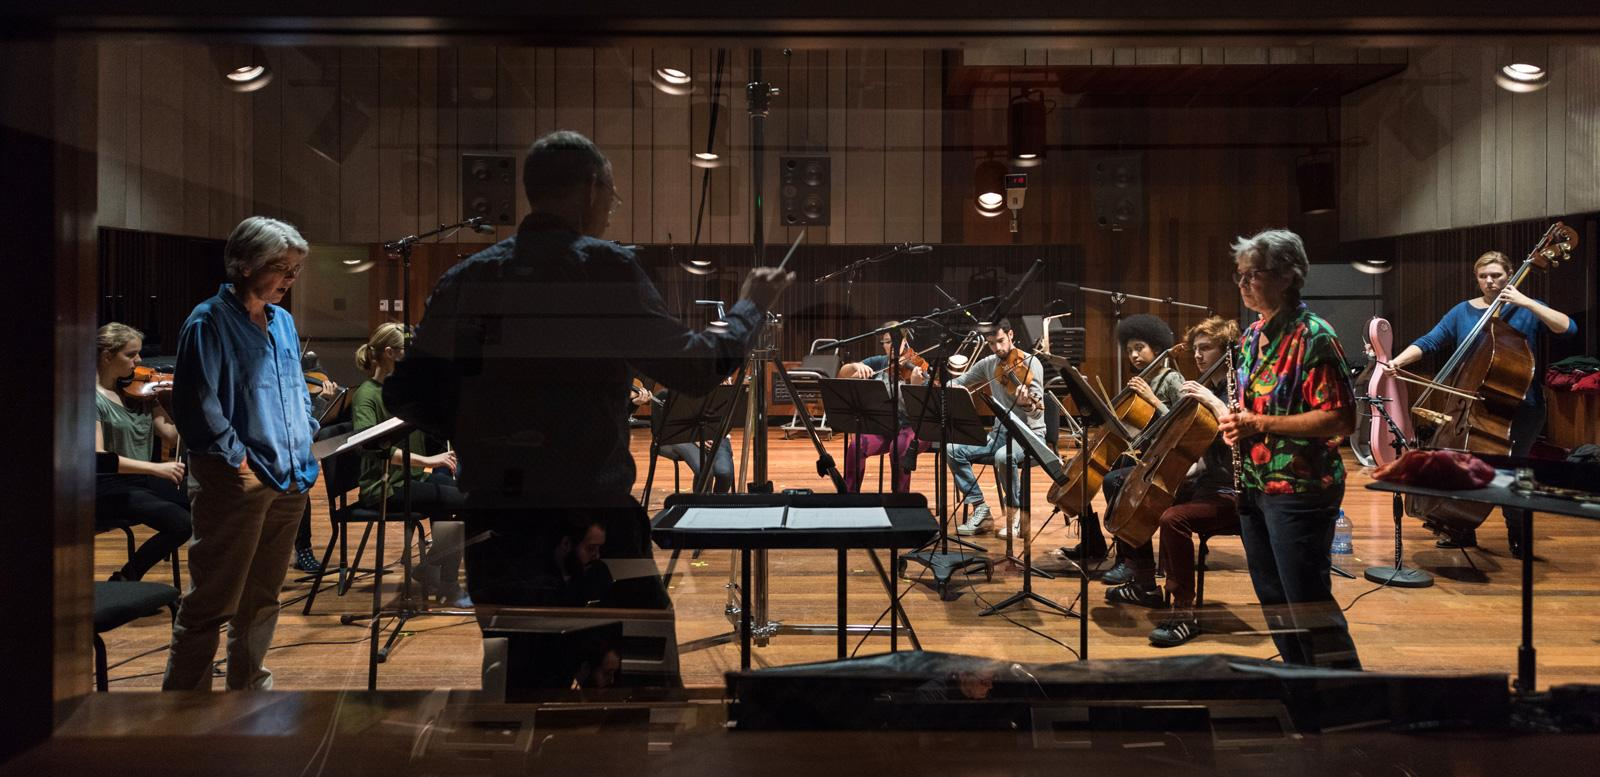 A string ensemble and oboist in the recording studio, as seen through the control room glass.